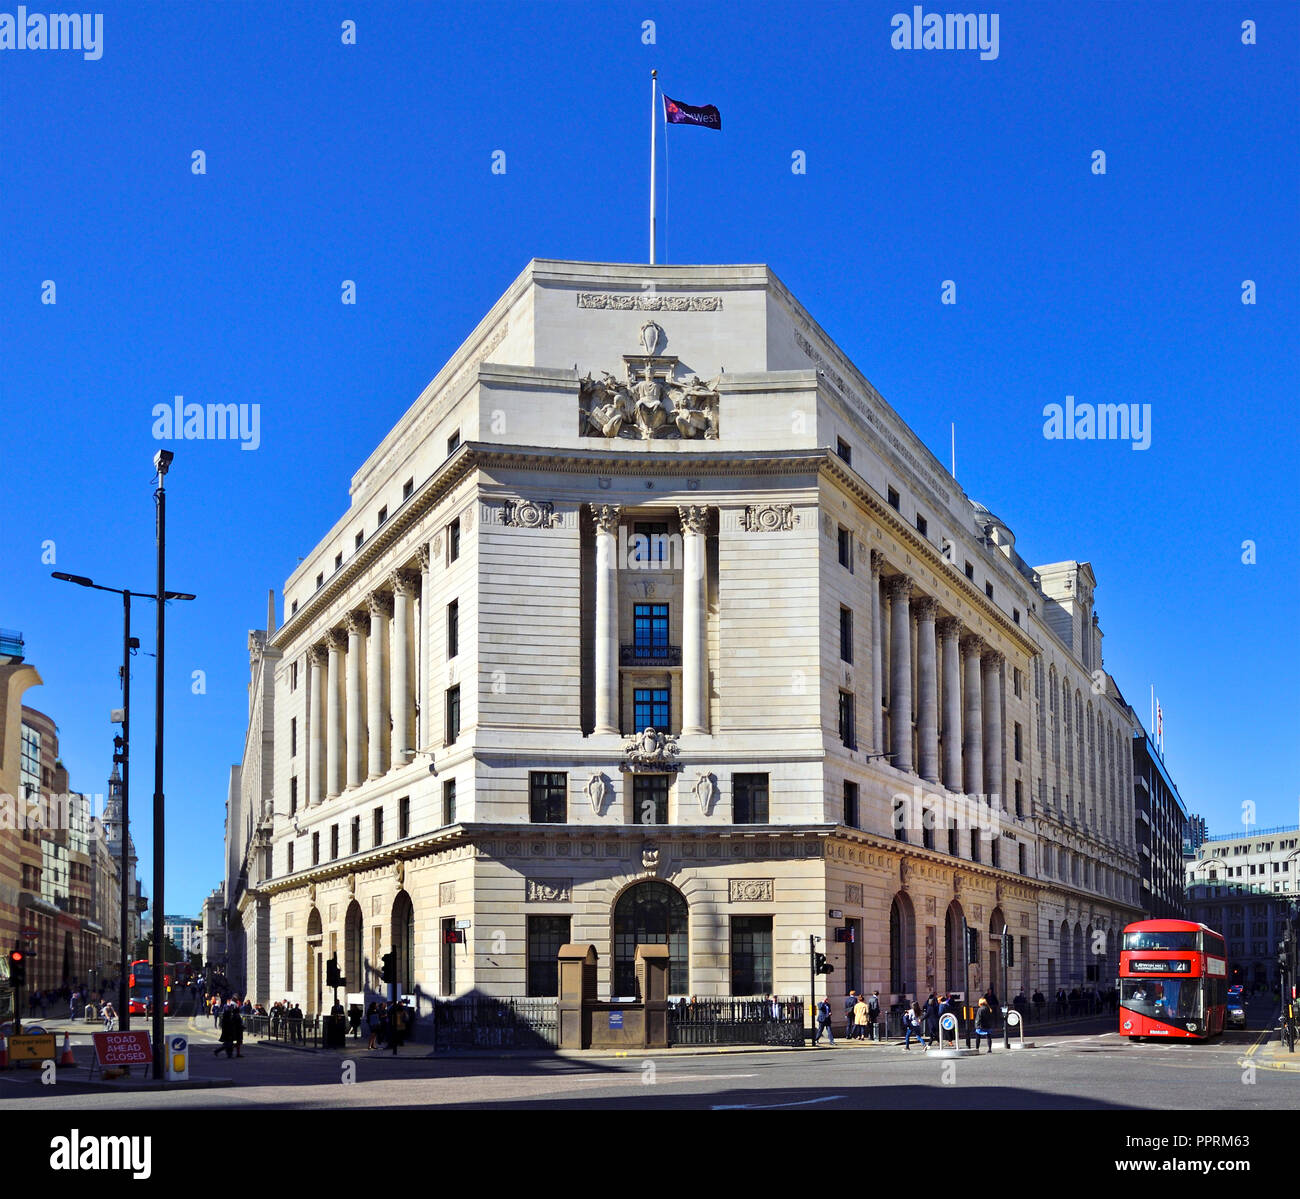 NatWest Bank headquarters in the City of London, England, UK. On the corner of Princes Street and Mansion House Street - Stock Image